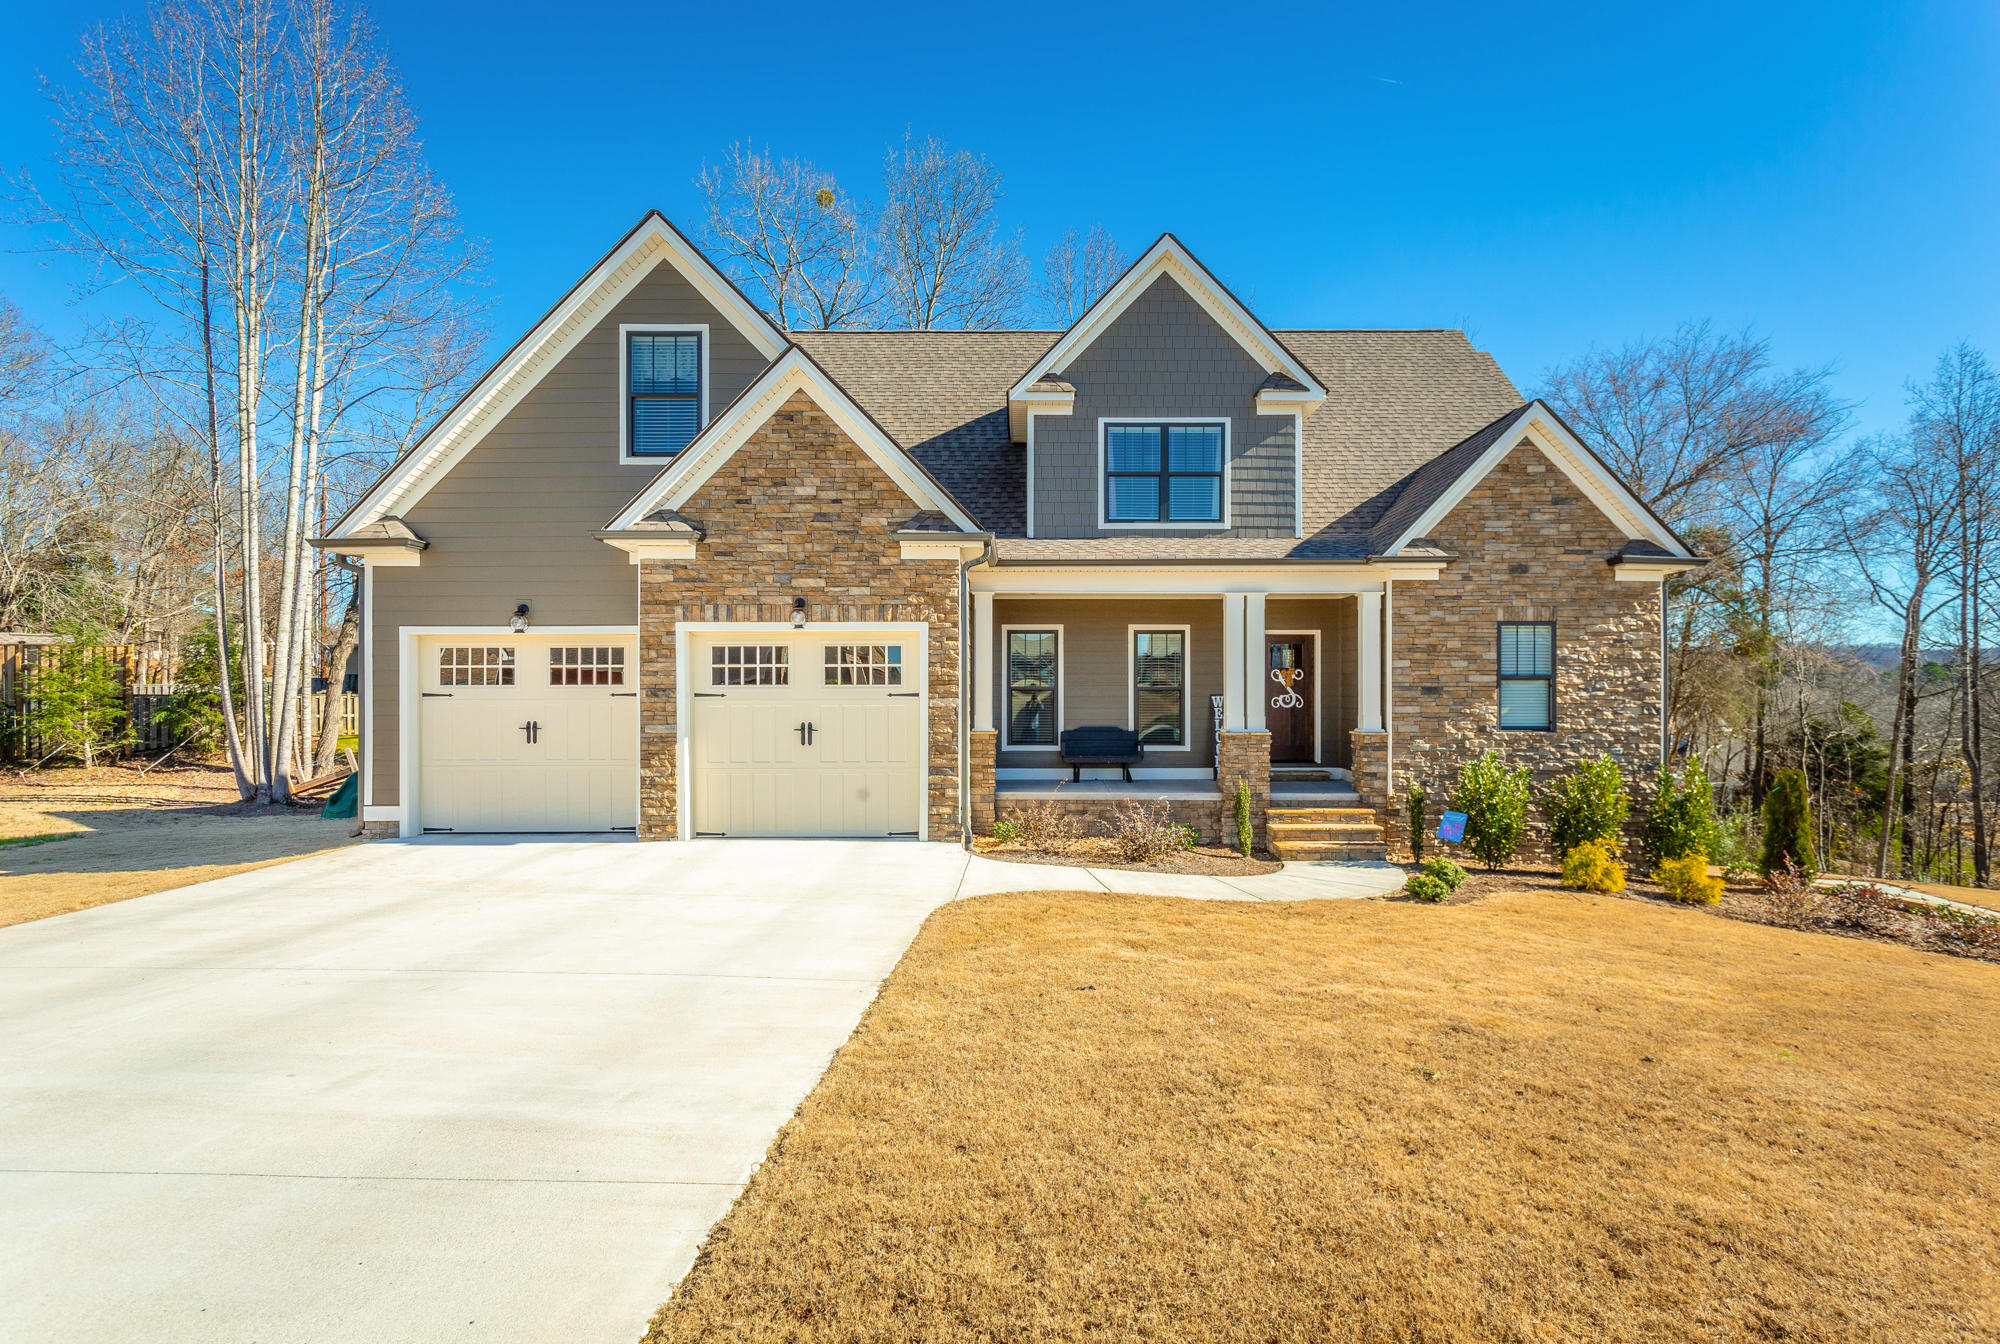 46 Myrtle Oak Way, Ringgold, GA 30736